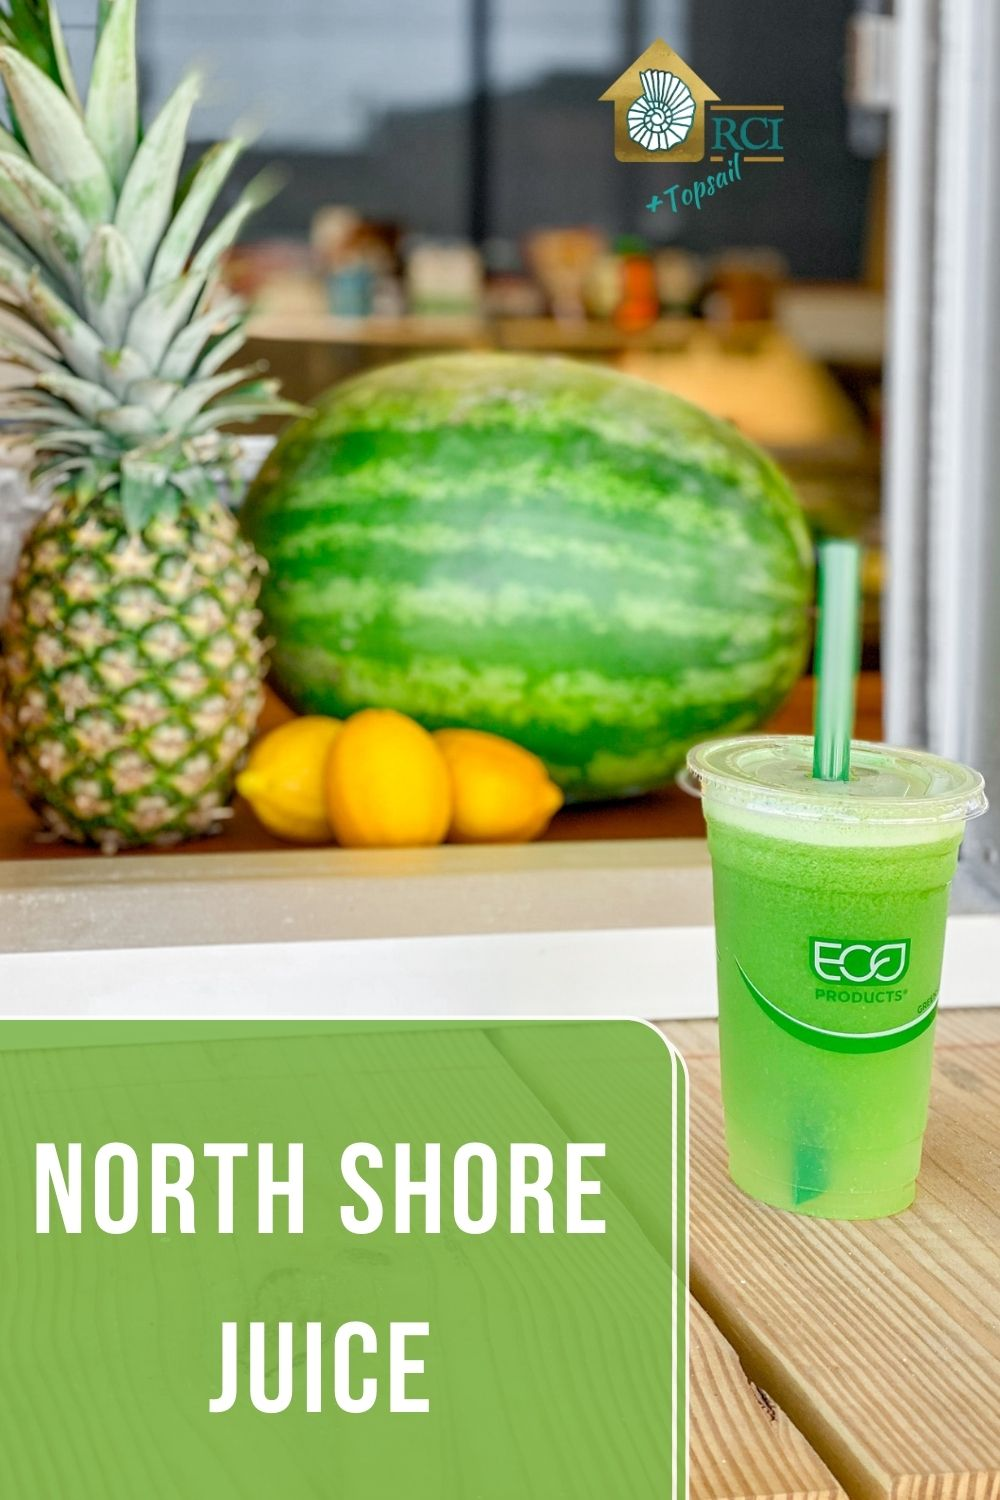 north shore juice new to surf city - RCI plus topsail